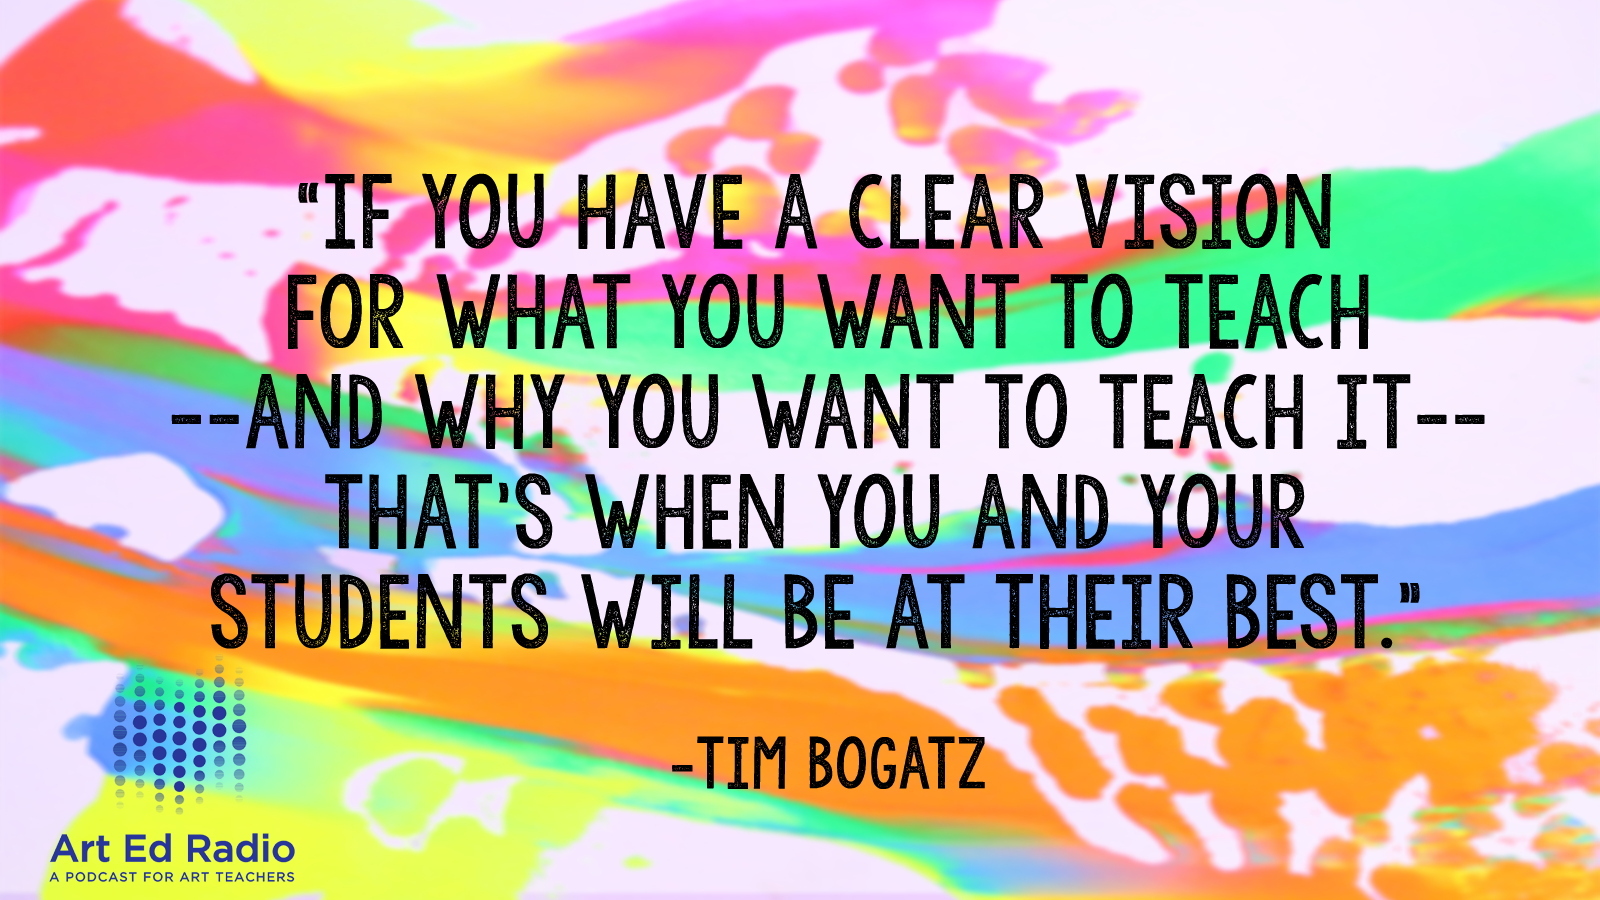 why you want to teach